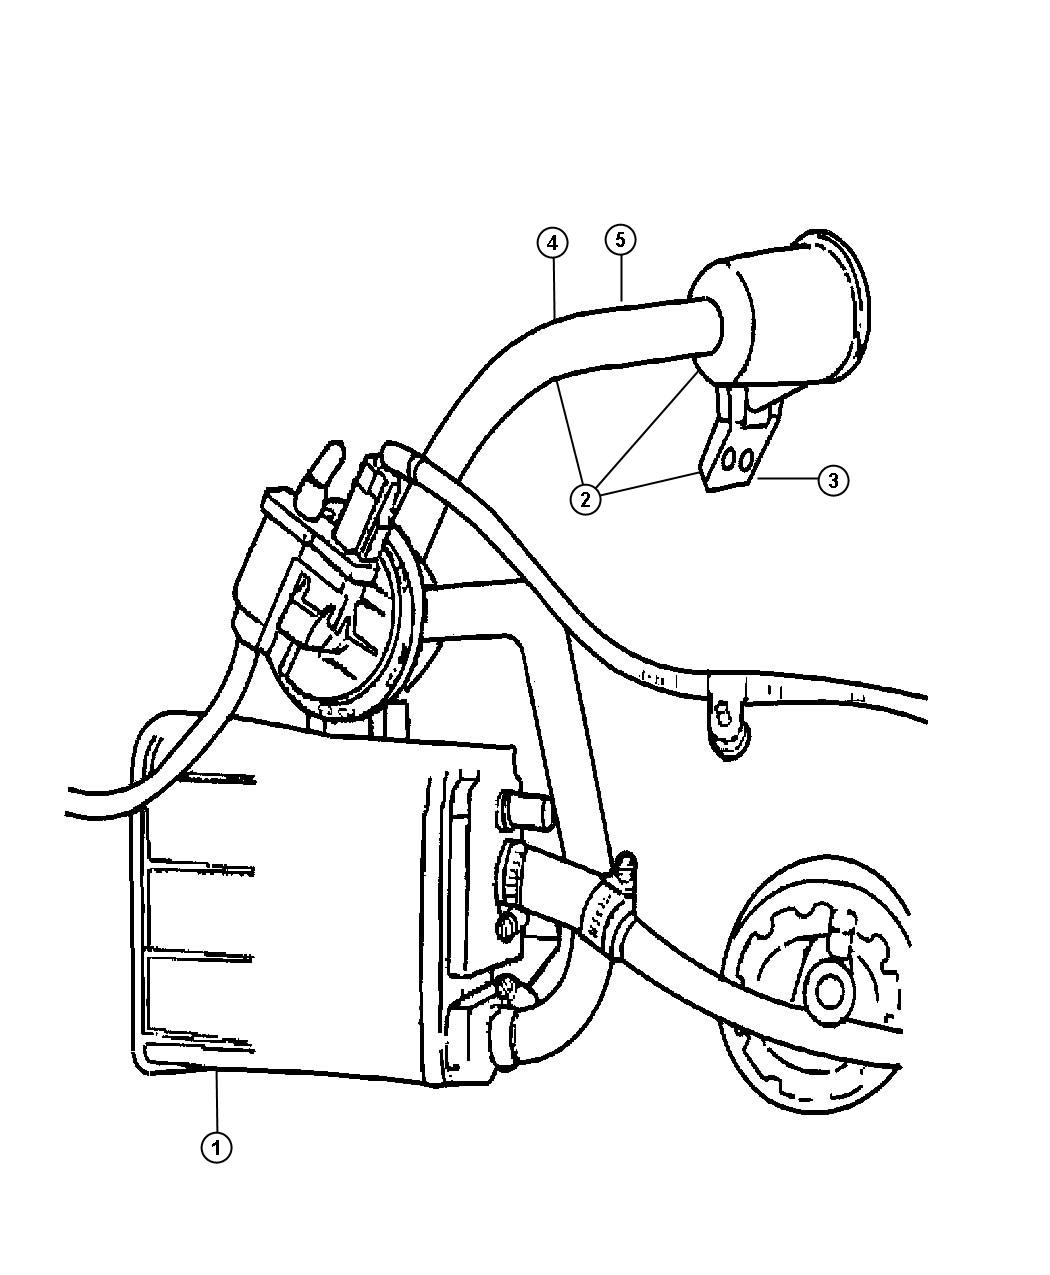 Vacuum Canister And Leak Detection Pump